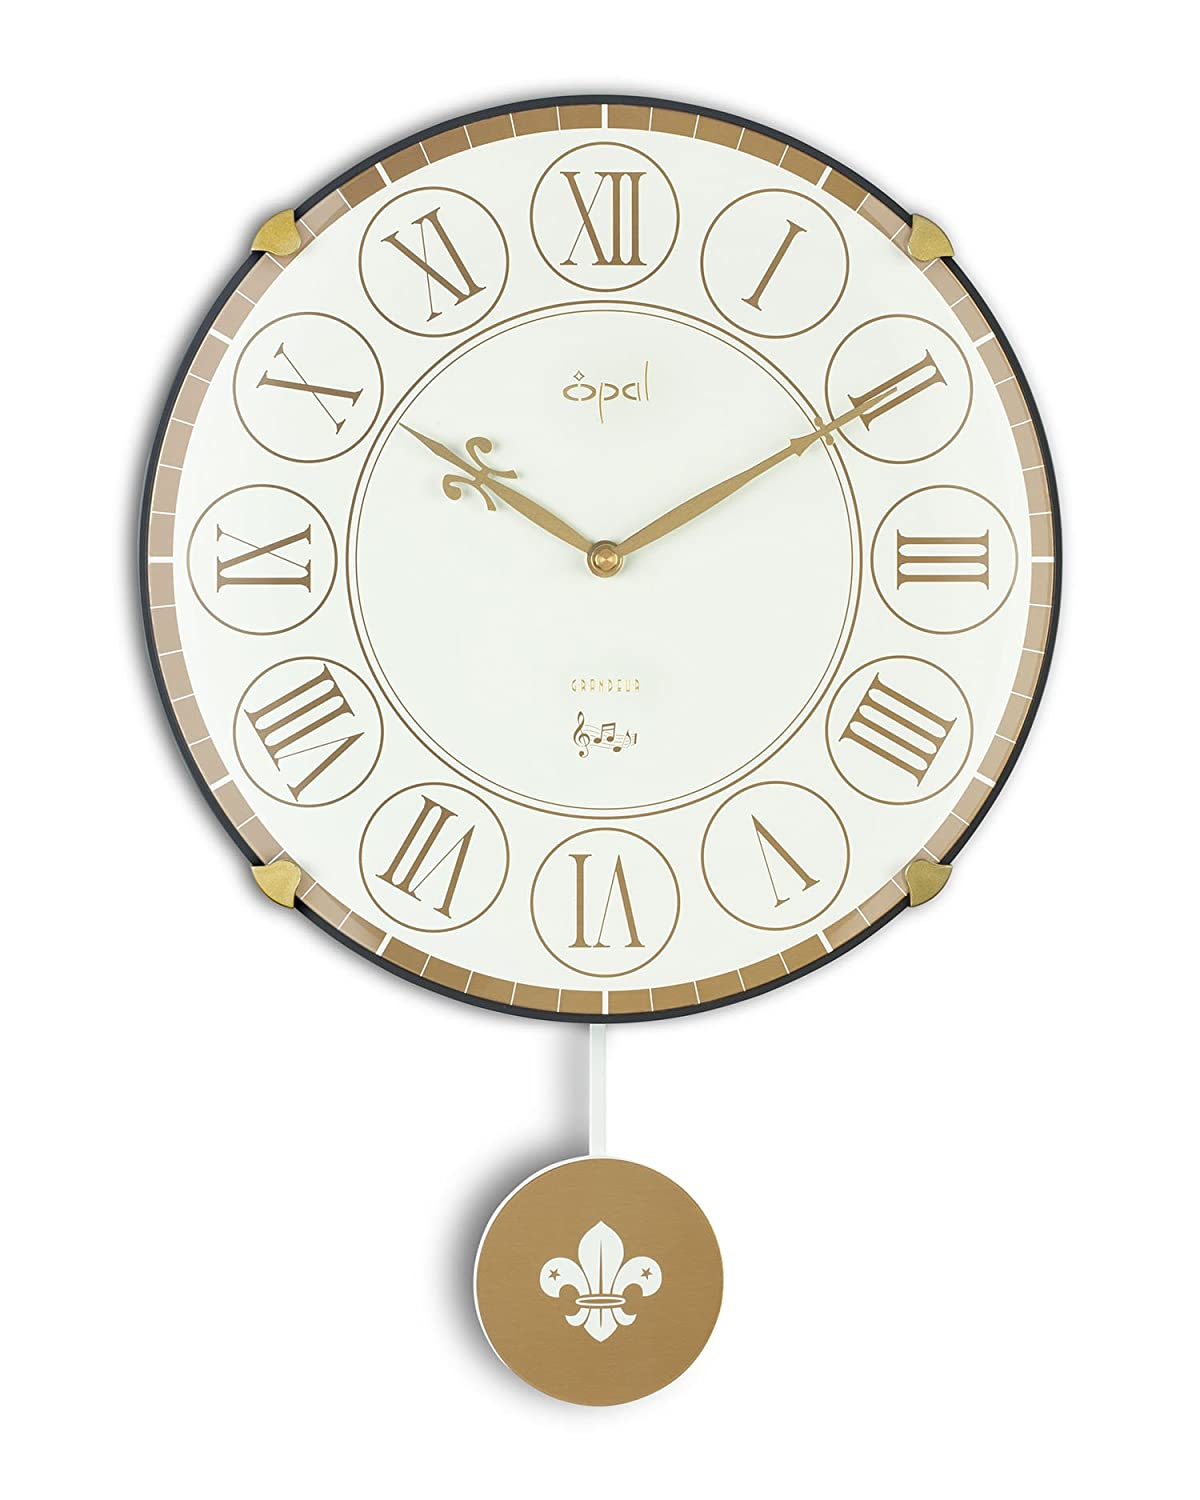 Buy opal designer dome glass wall clock 36 cm x 36 cm x 10cm buy opal designer dome glass wall clock 36 cm x 36 cm x 10cm white online at low prices in india amazon amipublicfo Choice Image